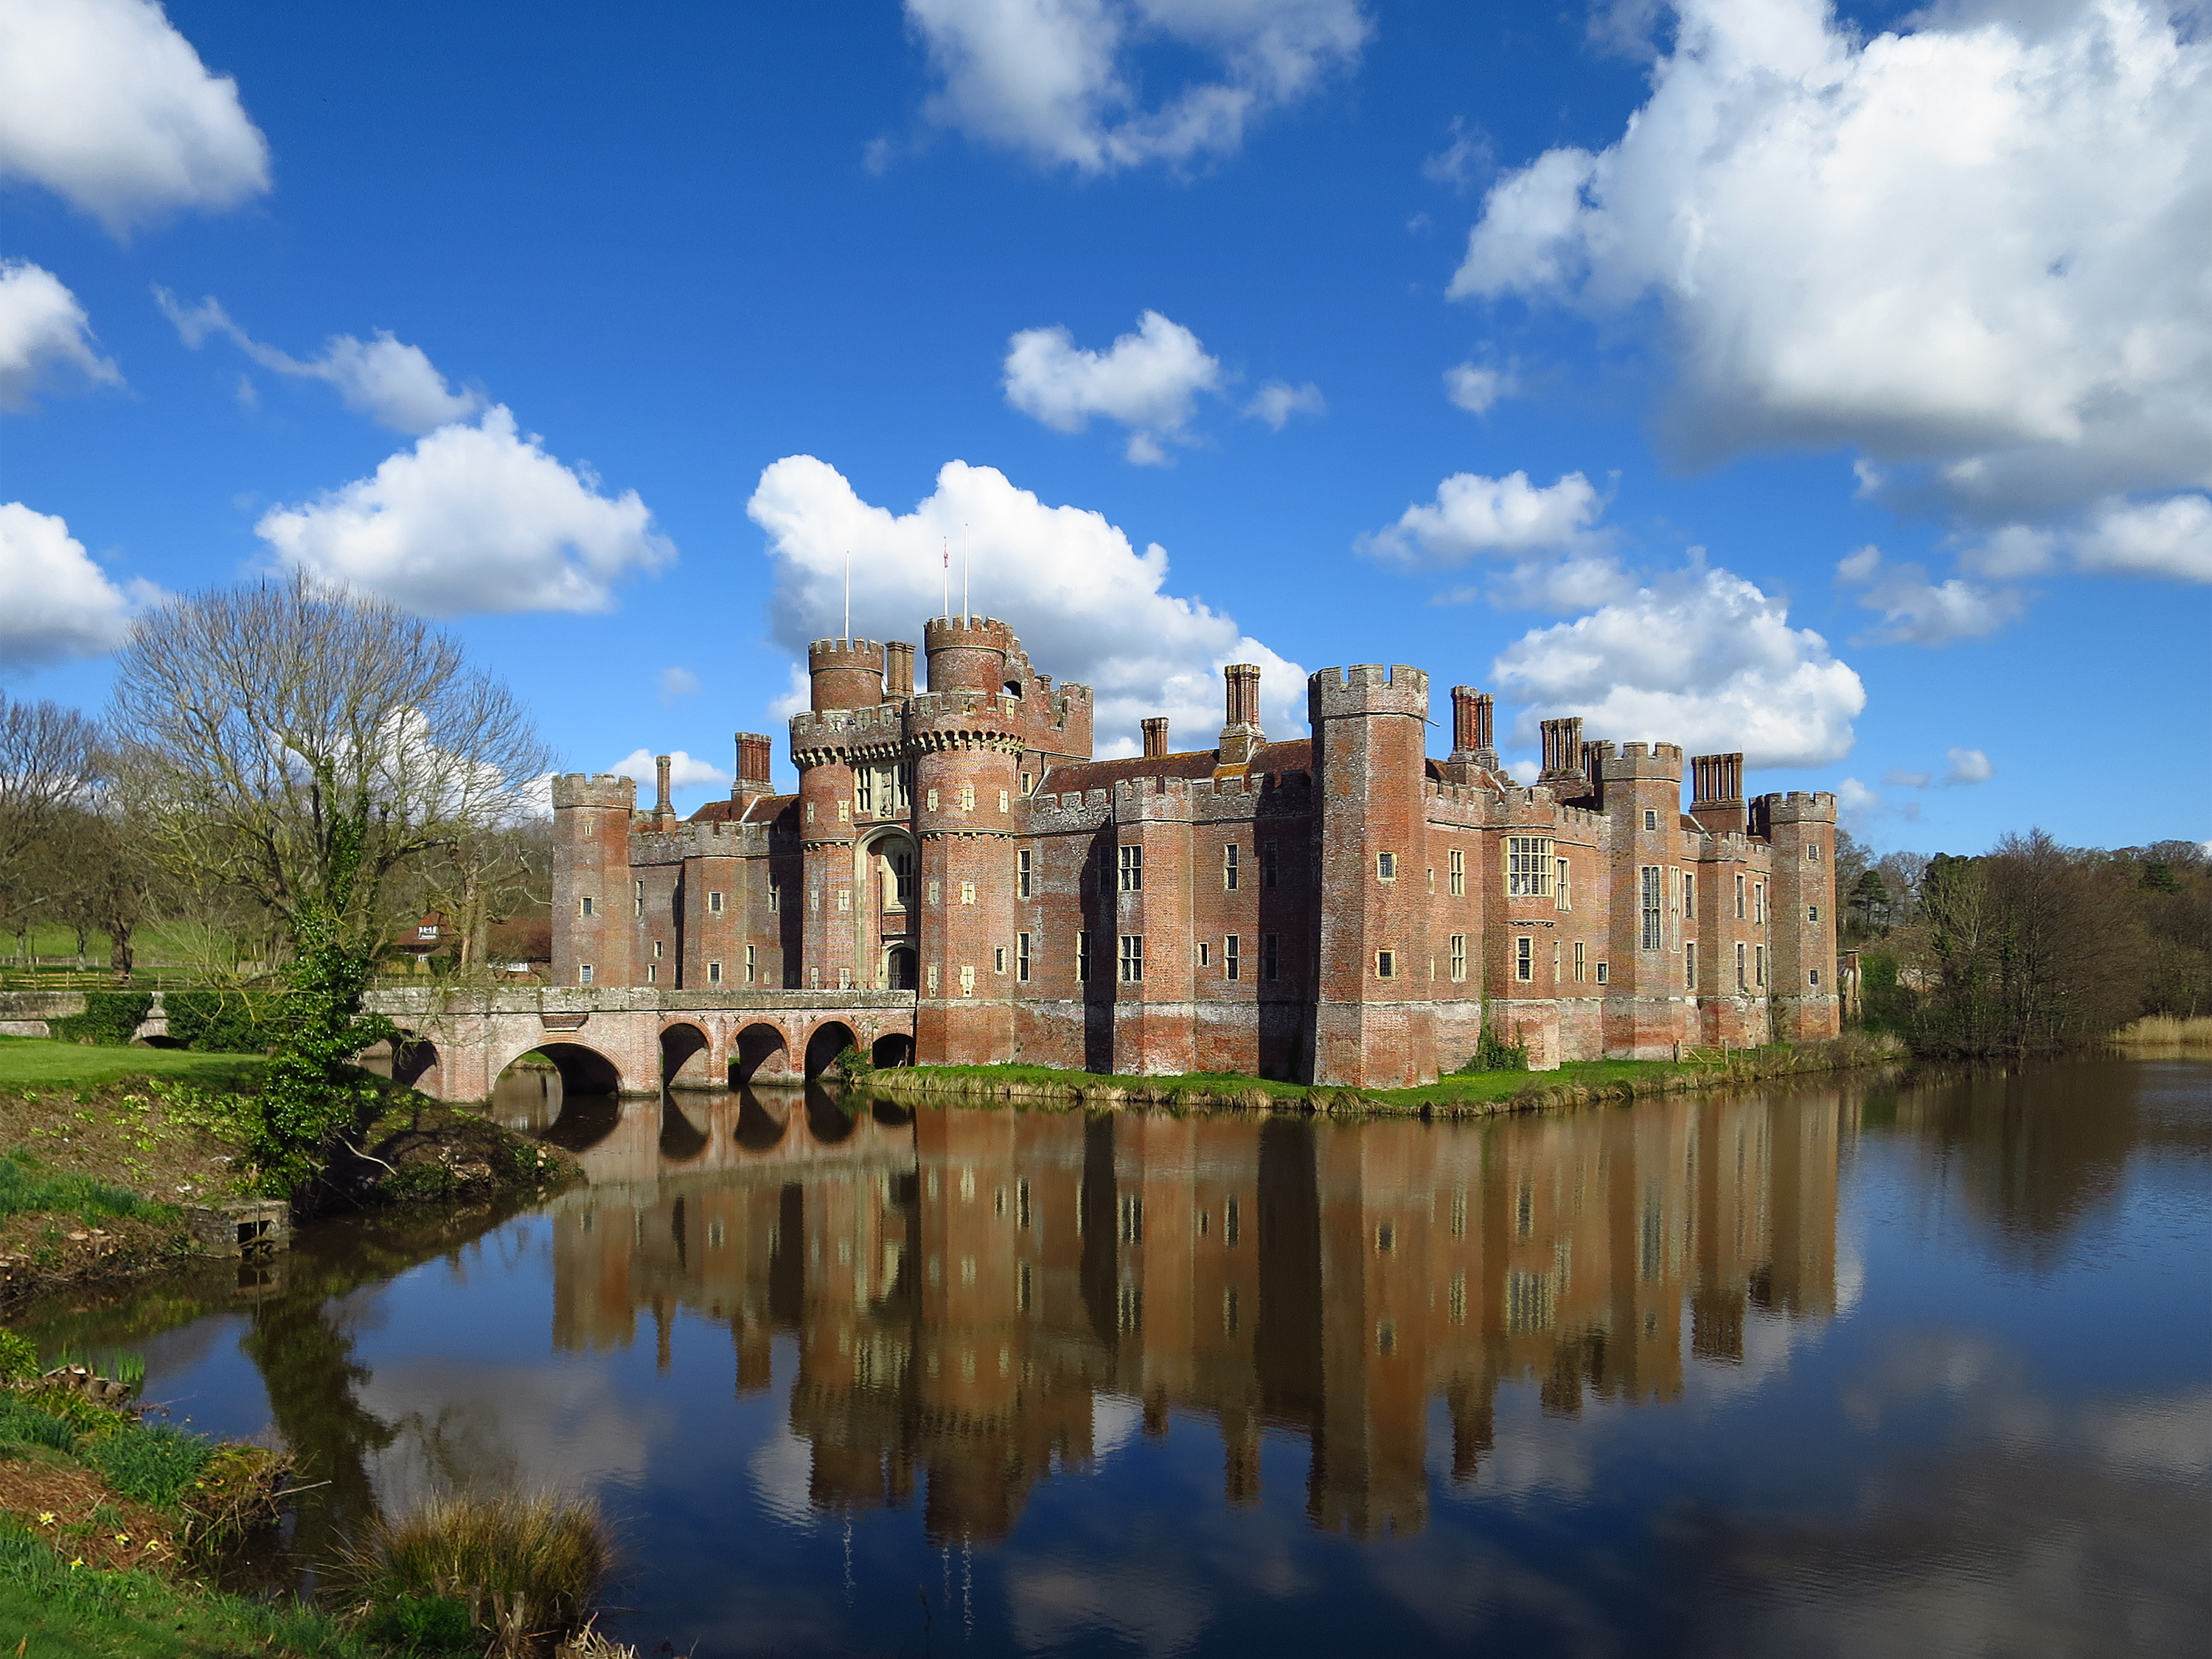 Herstmonceux Castle with moat.jpg